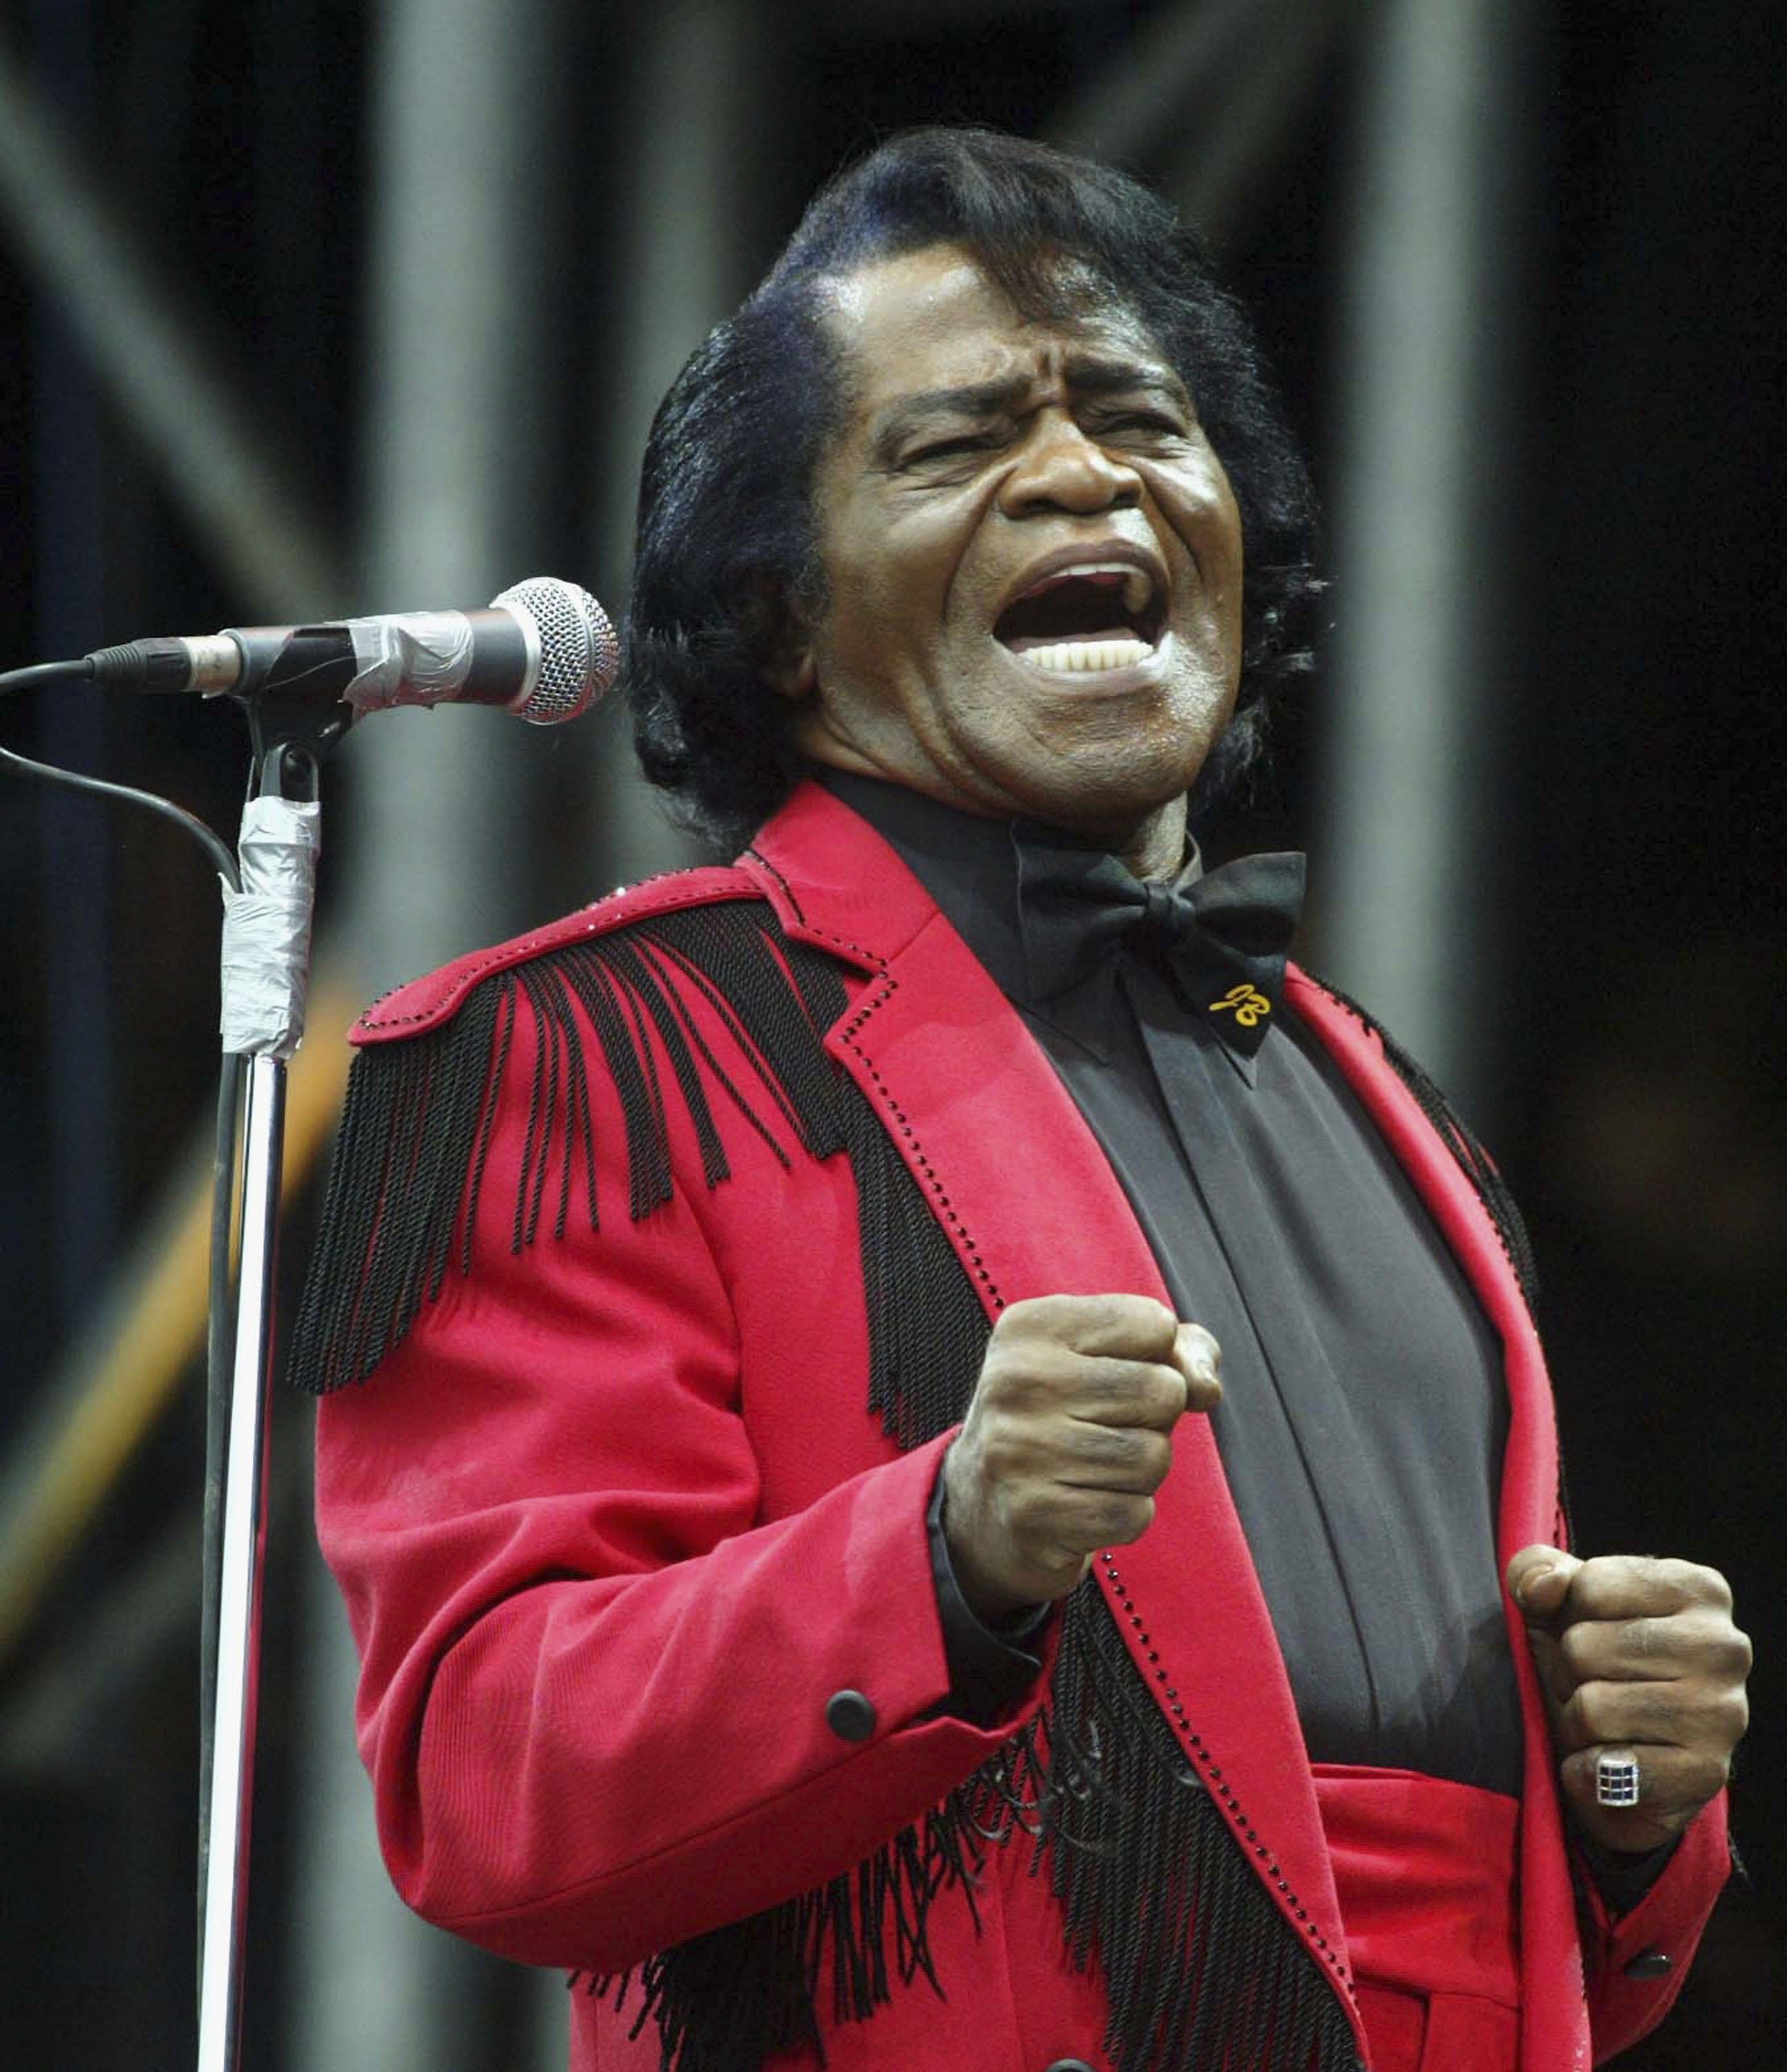 James Brown at the Glastonbury Festival on June 27, 2004 in Somerset, England | Photo: Getty Images